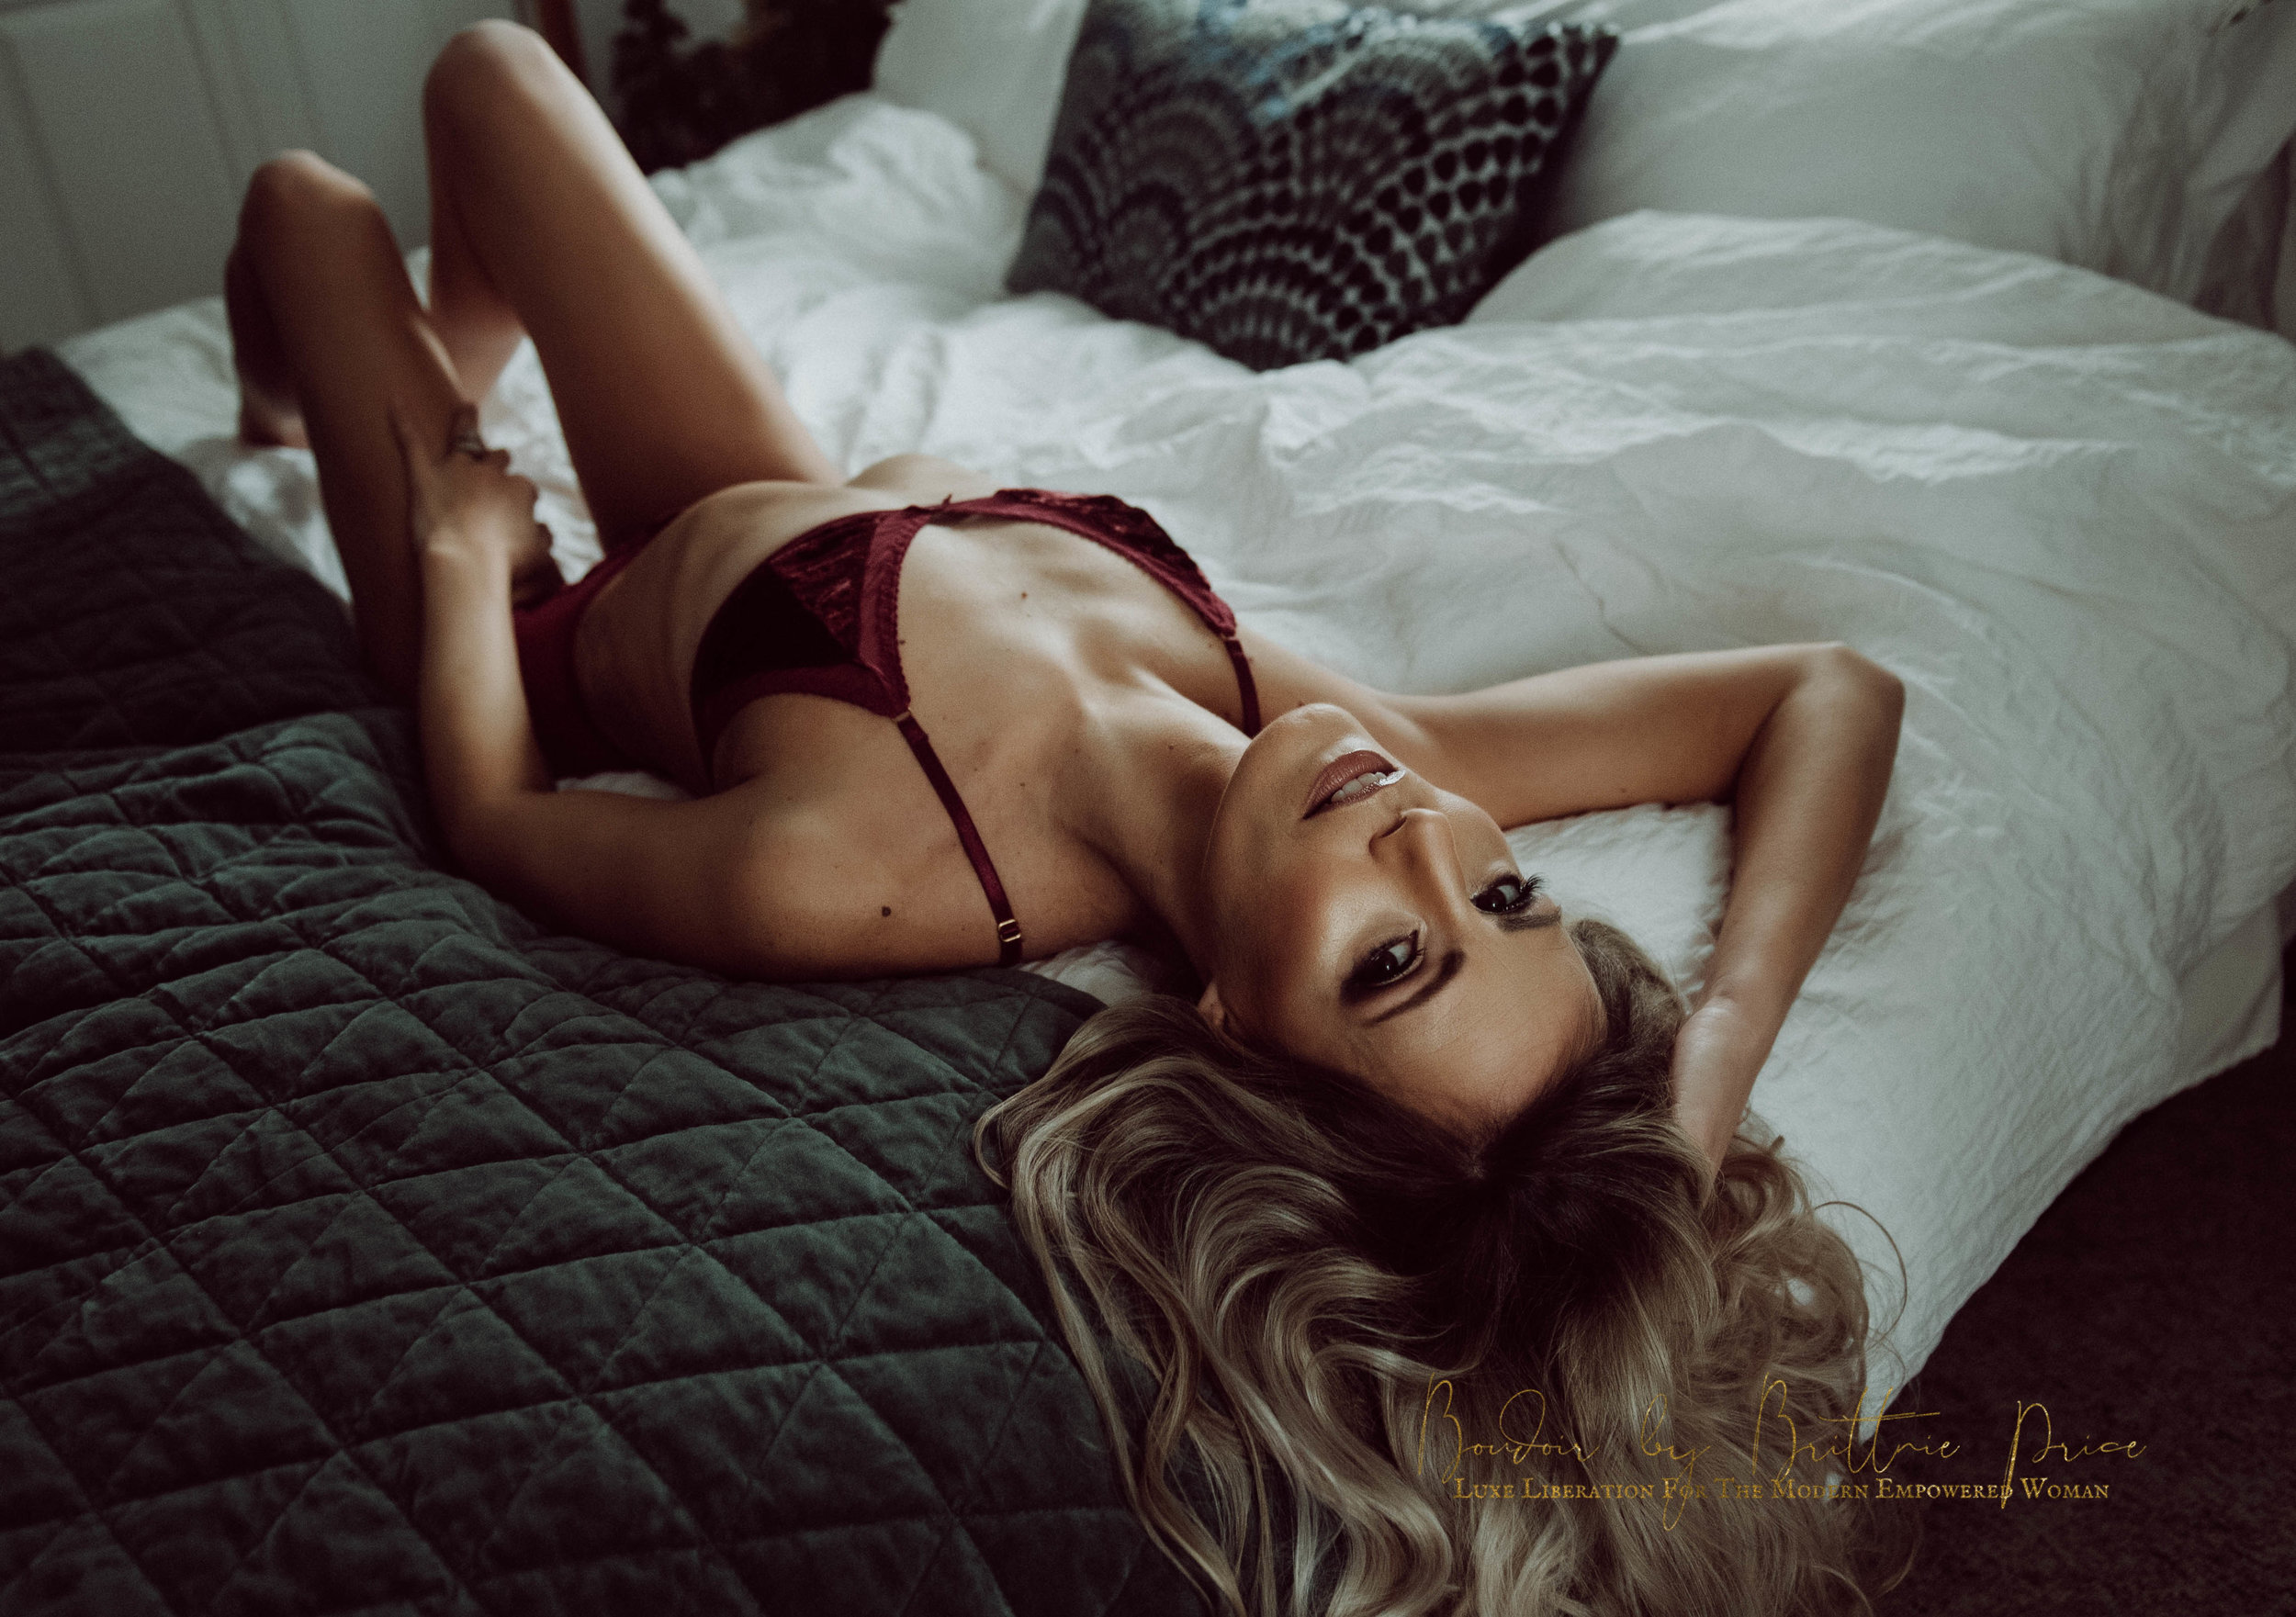 Nashville boudoir photography, boudoir photographer nashville, best boudoir photographer in nashville, antioch boudoir studio, nashville boudoir photography studio